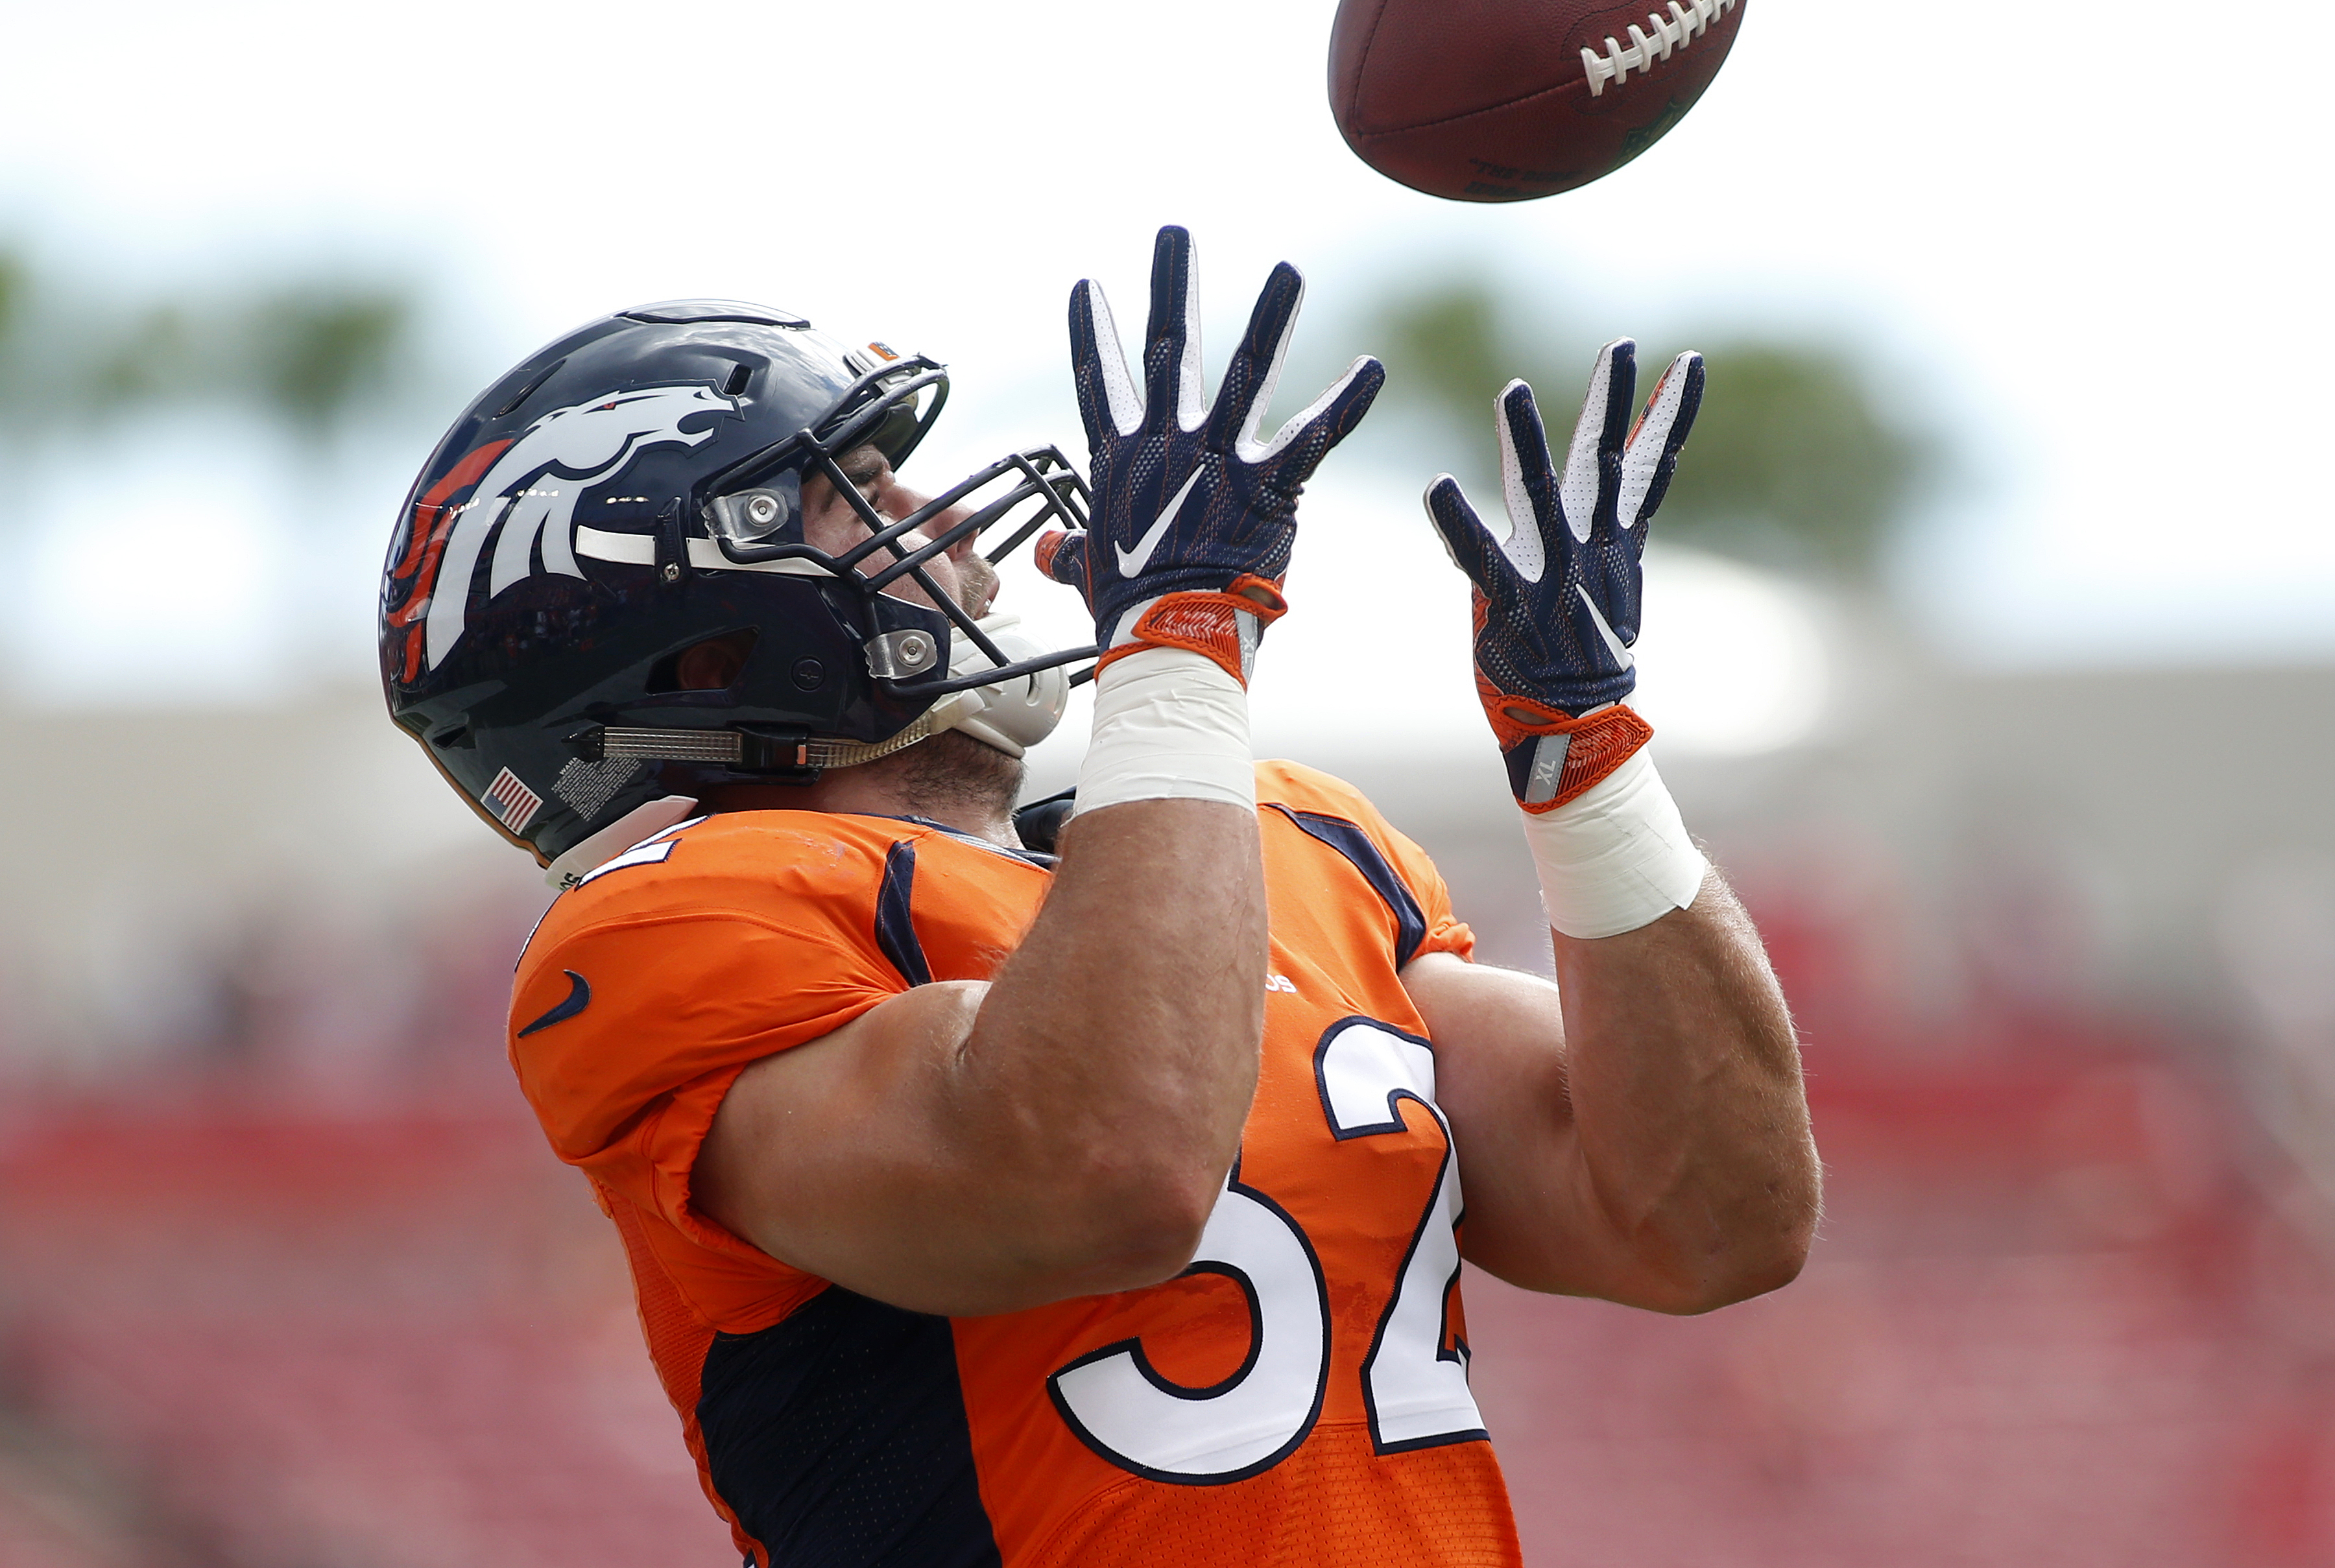 Fullback Andy Janovich of the Denver Broncos warms up before the start of an NFL game against the Tampa Bay Buccaneers on Oct. 2, 2016, at Raymond James Stadium in Tampa, Florida. (Photo by Brian Blanco/Getty Images)